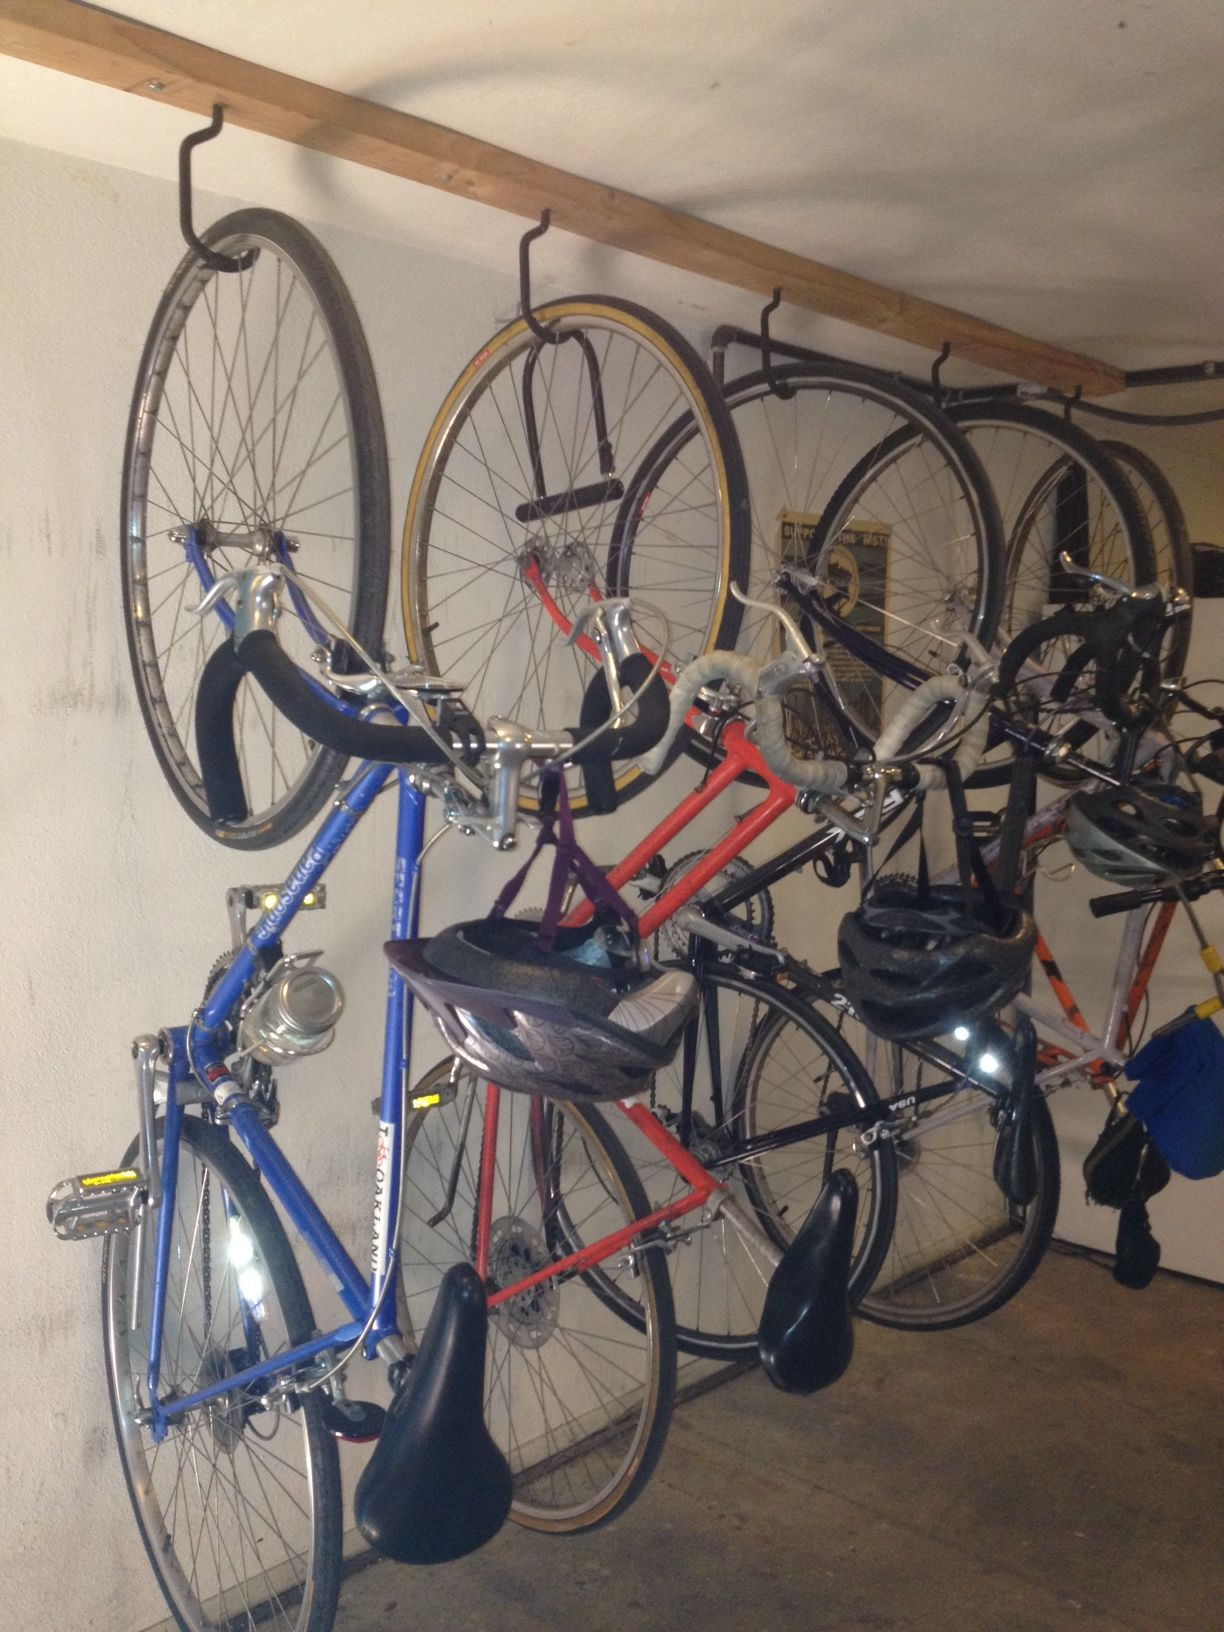 Hanging Bike Racks A Hearty Project But So Worthwhile We Rarely Have Fewer Than 10 Bikes In Our House Hanging Bike Rack Bike Storage Bike Shed